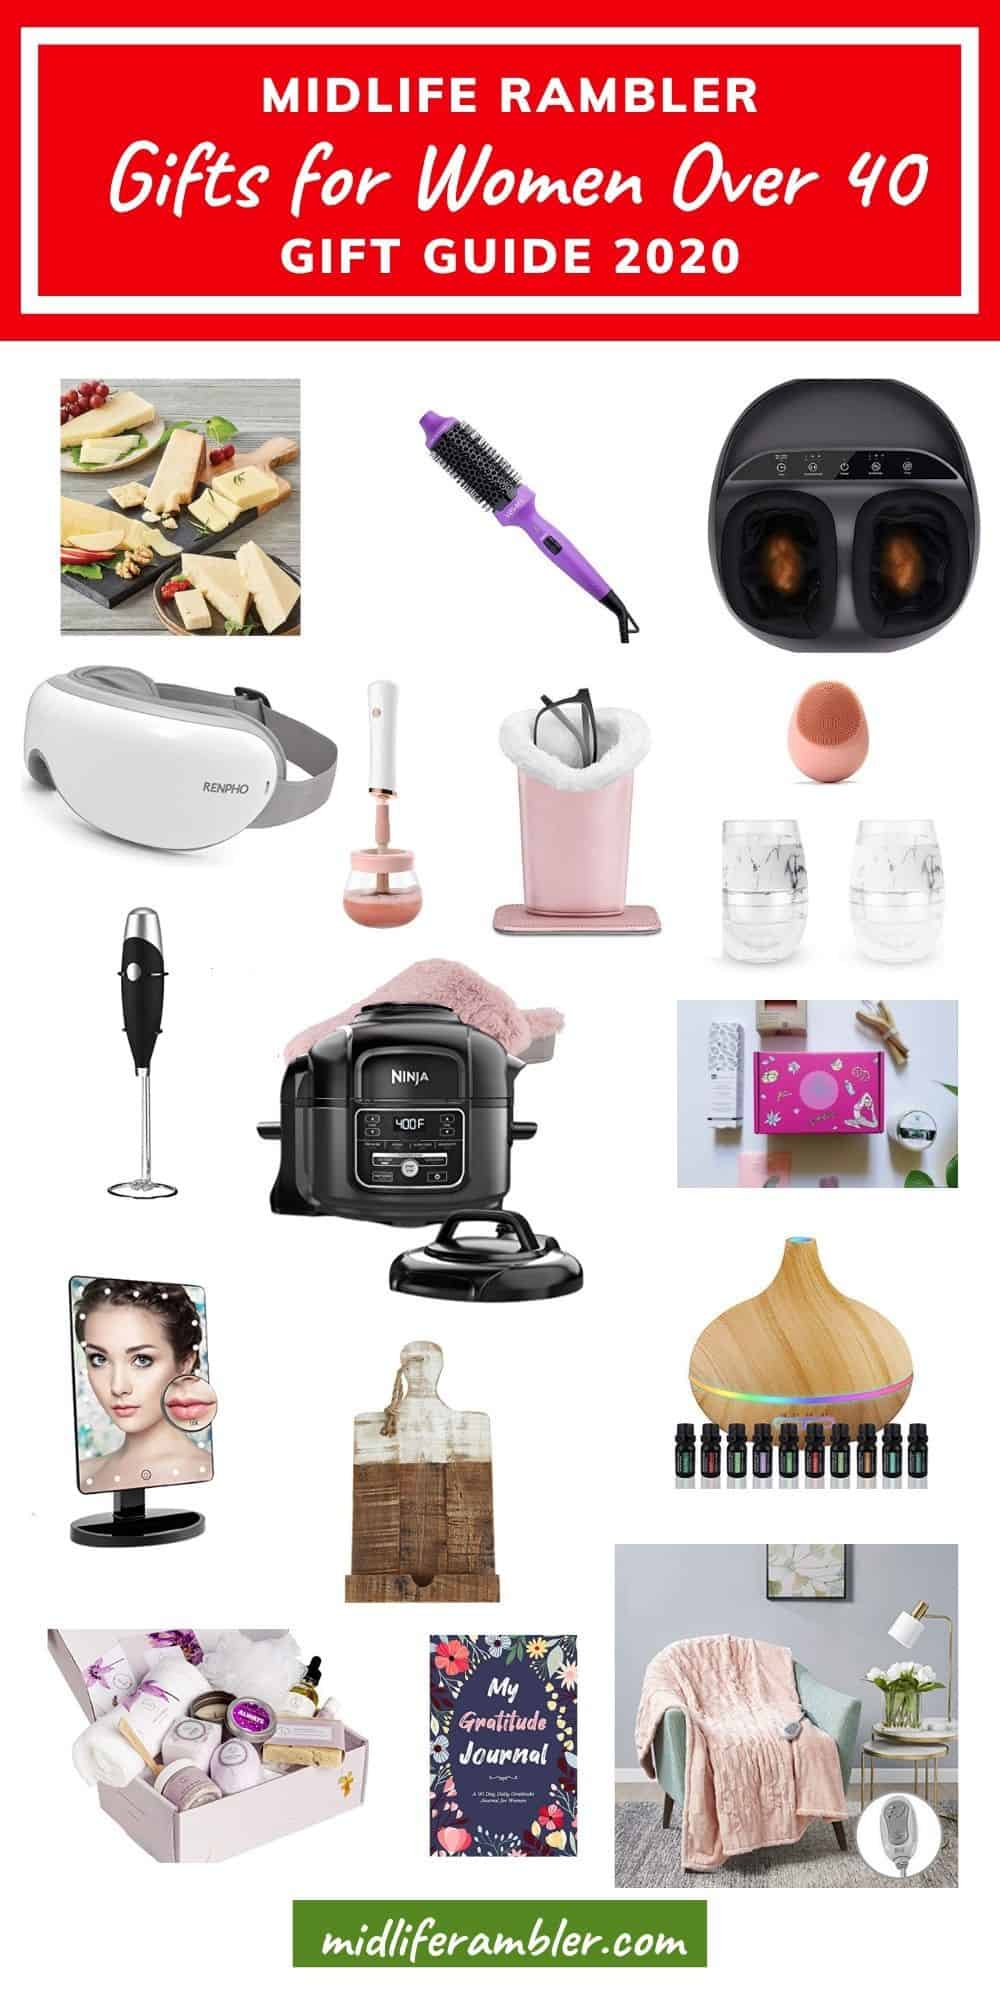 Gift Guide 2020: The Best Gifts for Women Over 40 58